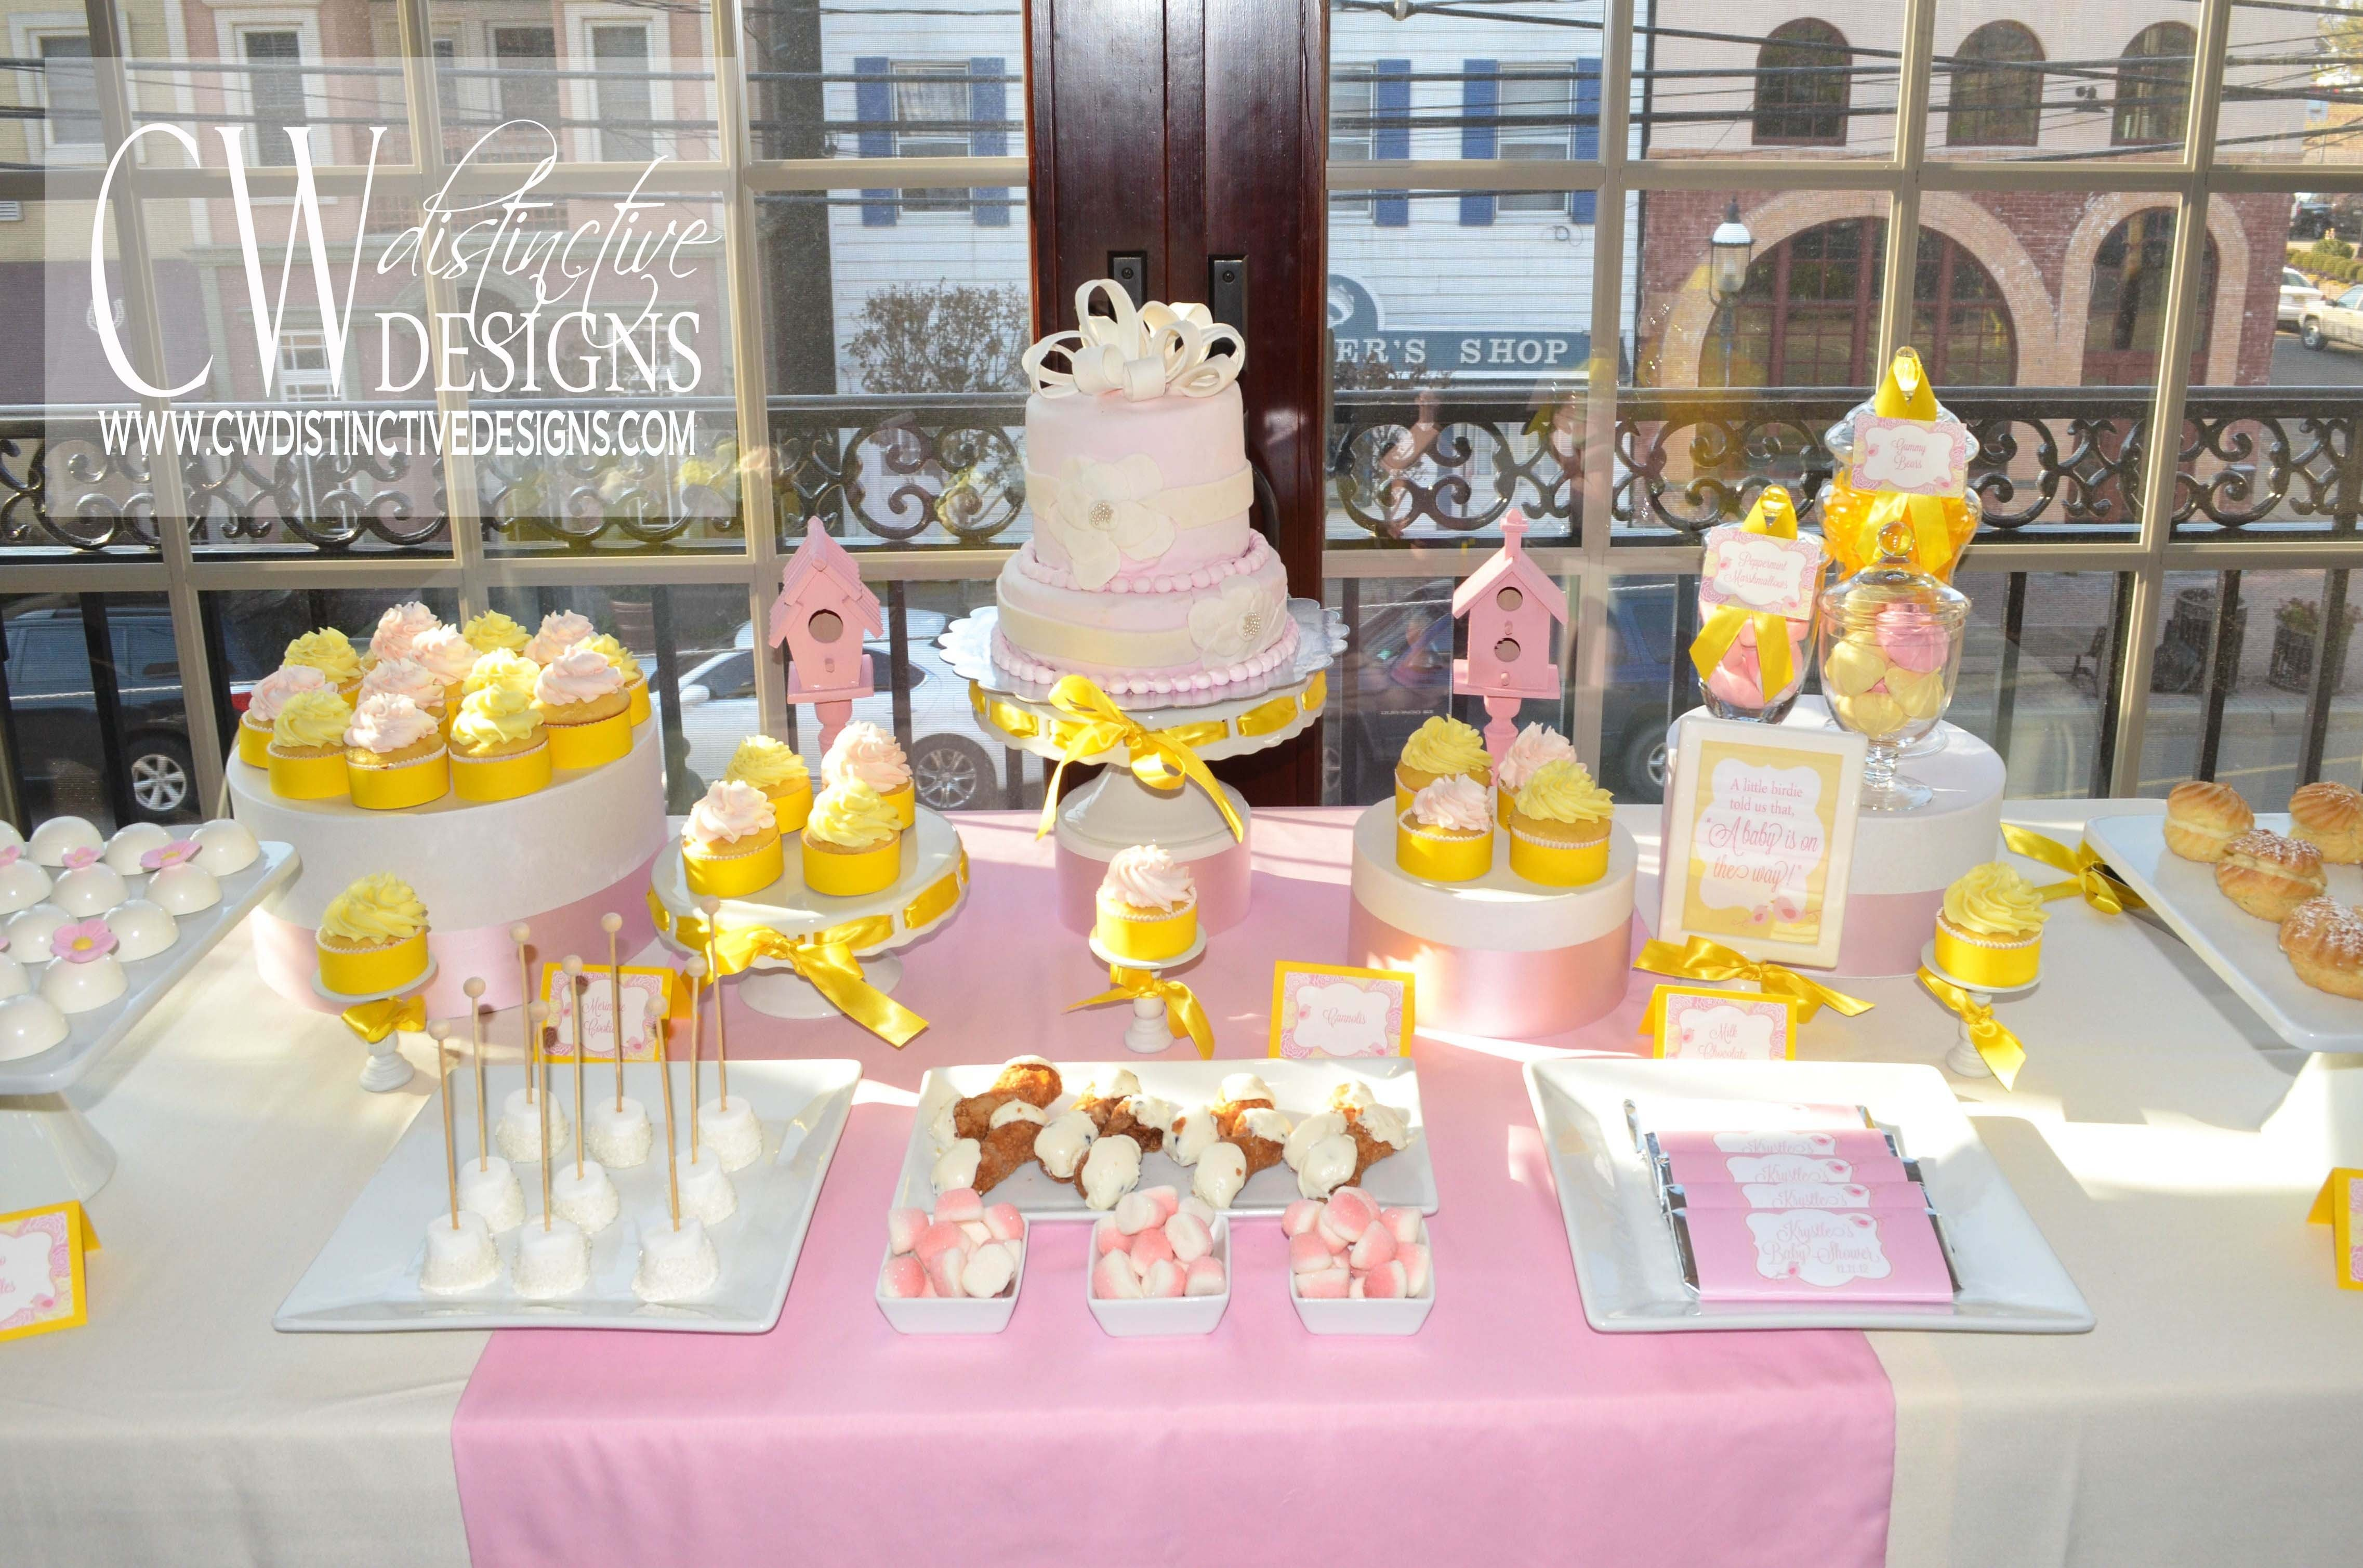 10 Stunning Pink And Yellow Baby Shower Ideas pink and yellow baby shower cw distinctive designs 2020